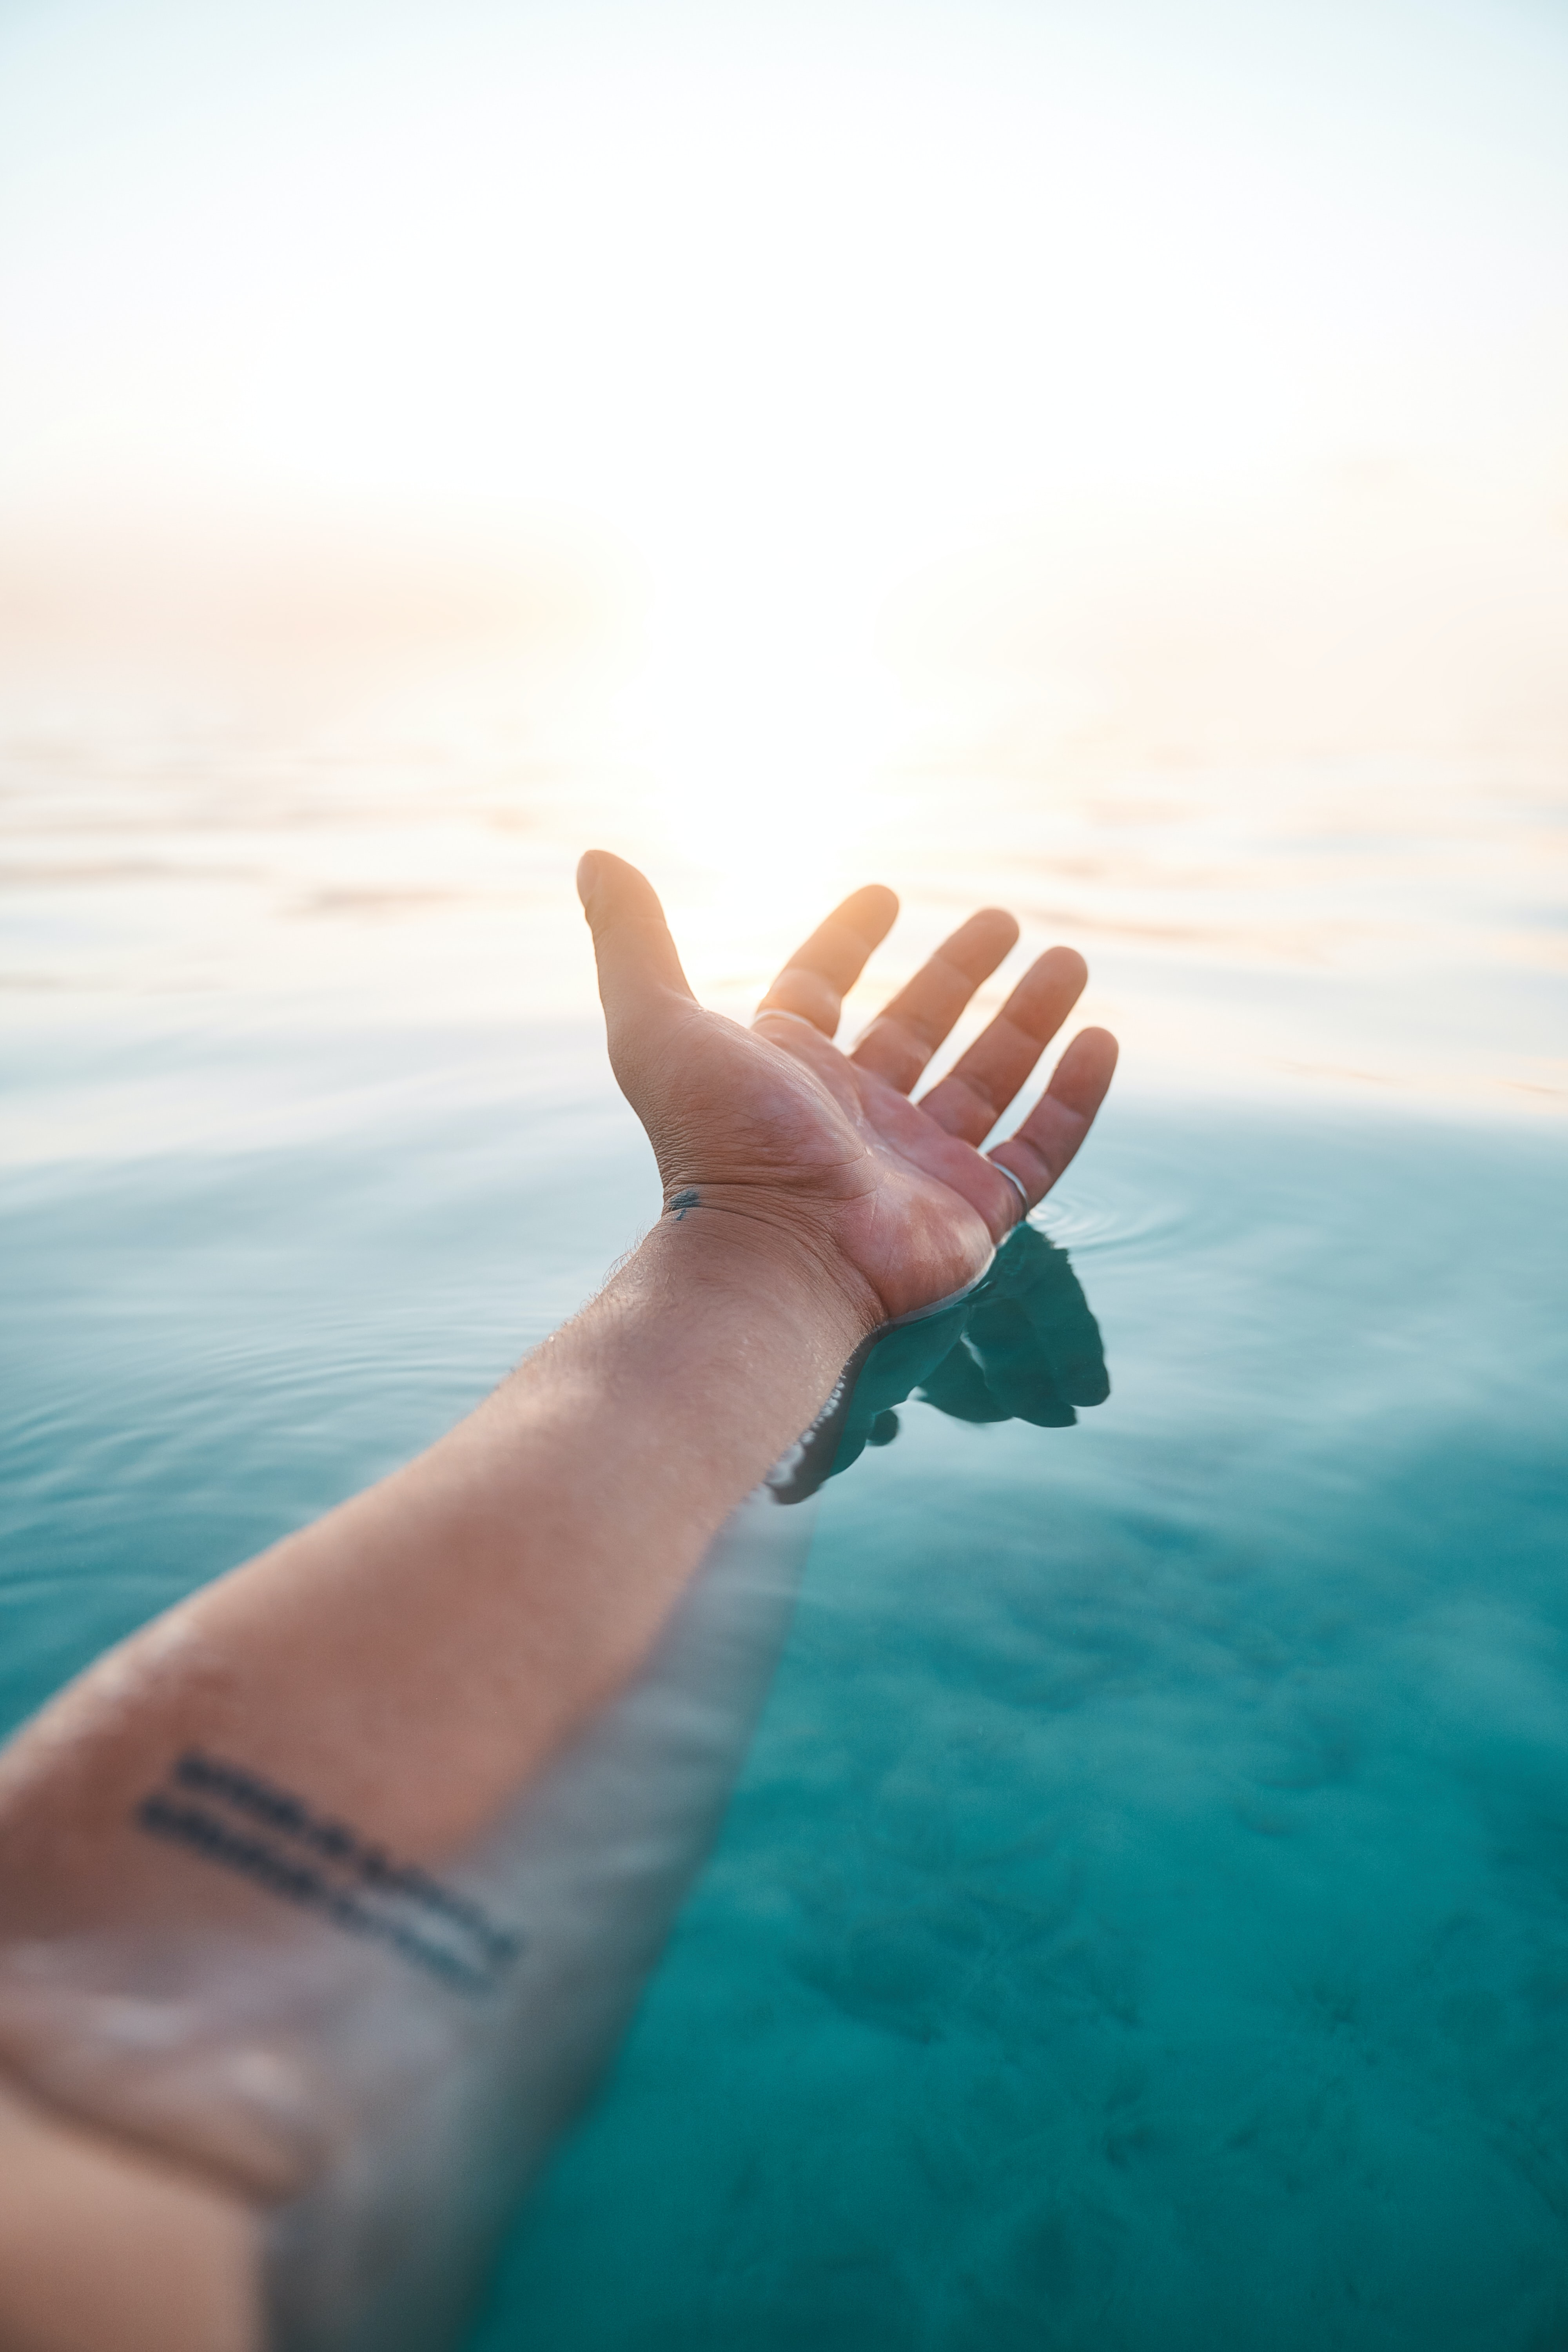 145741 download wallpaper Miscellanea, Miscellaneous, Hand, Water, Beams, Rays, Sun screensavers and pictures for free